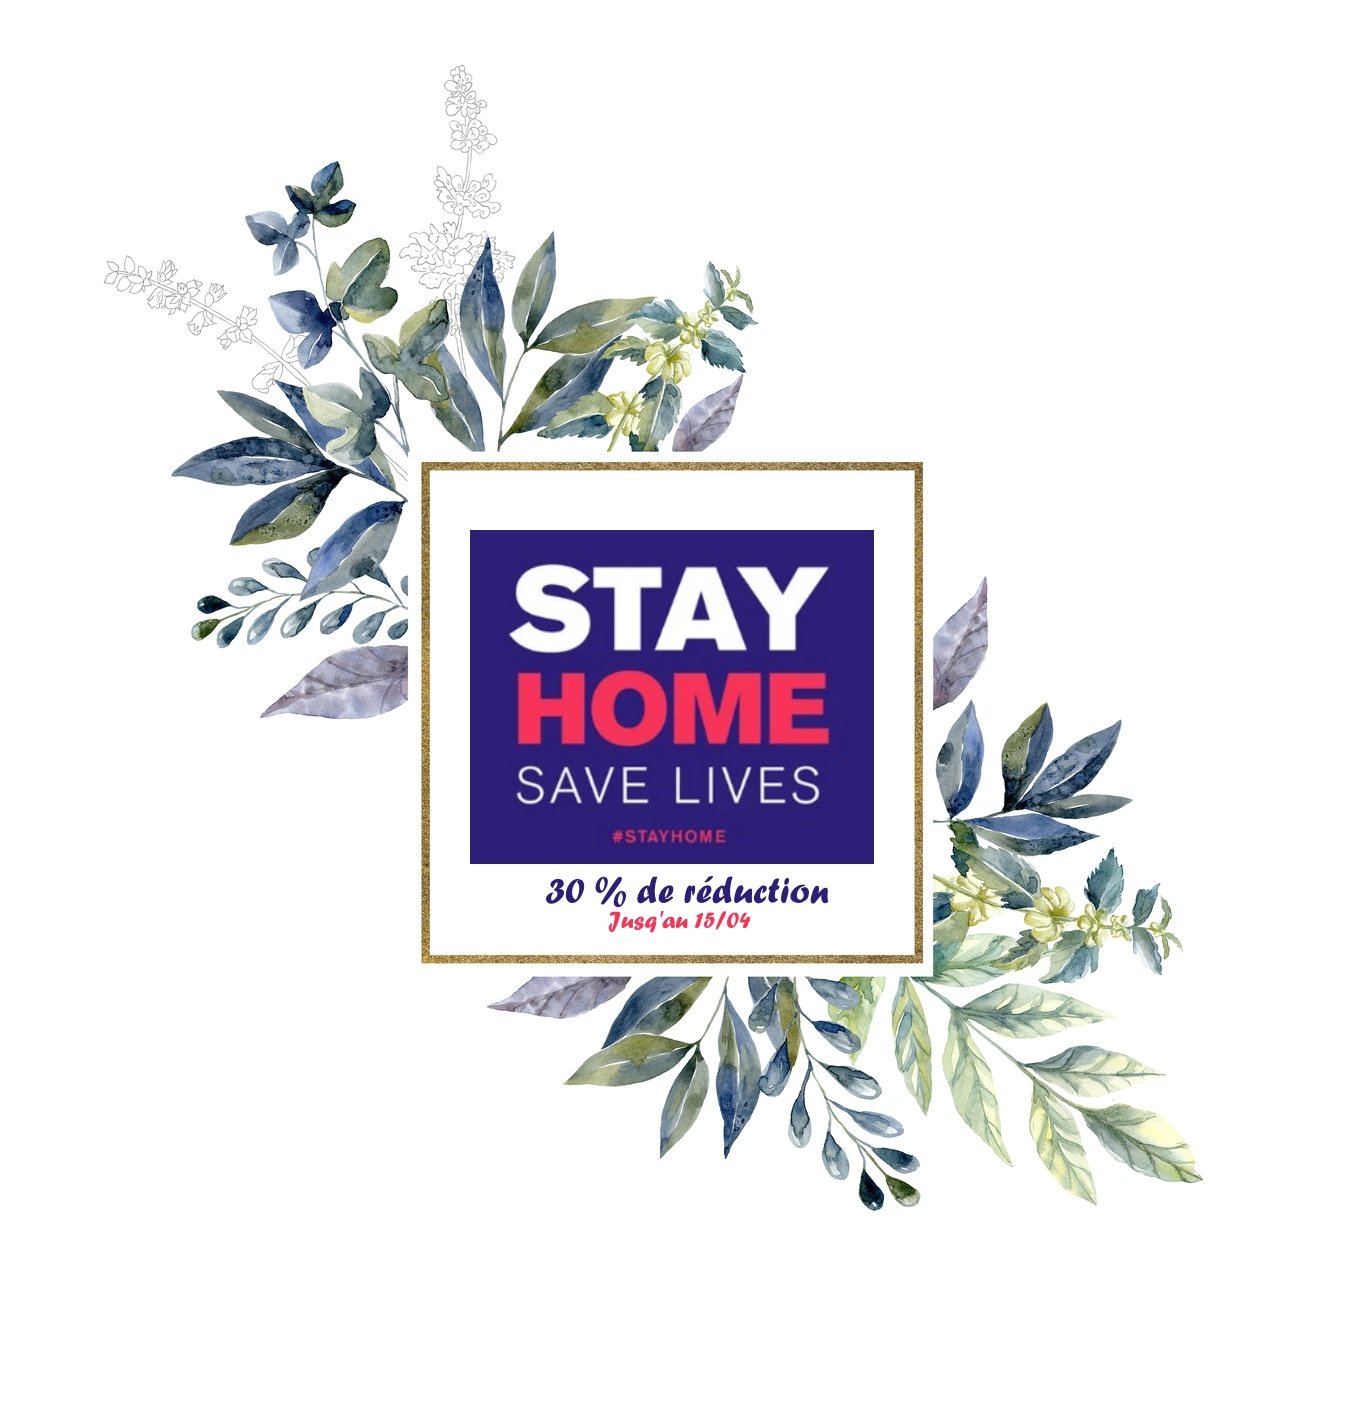 STAY-Home-plz